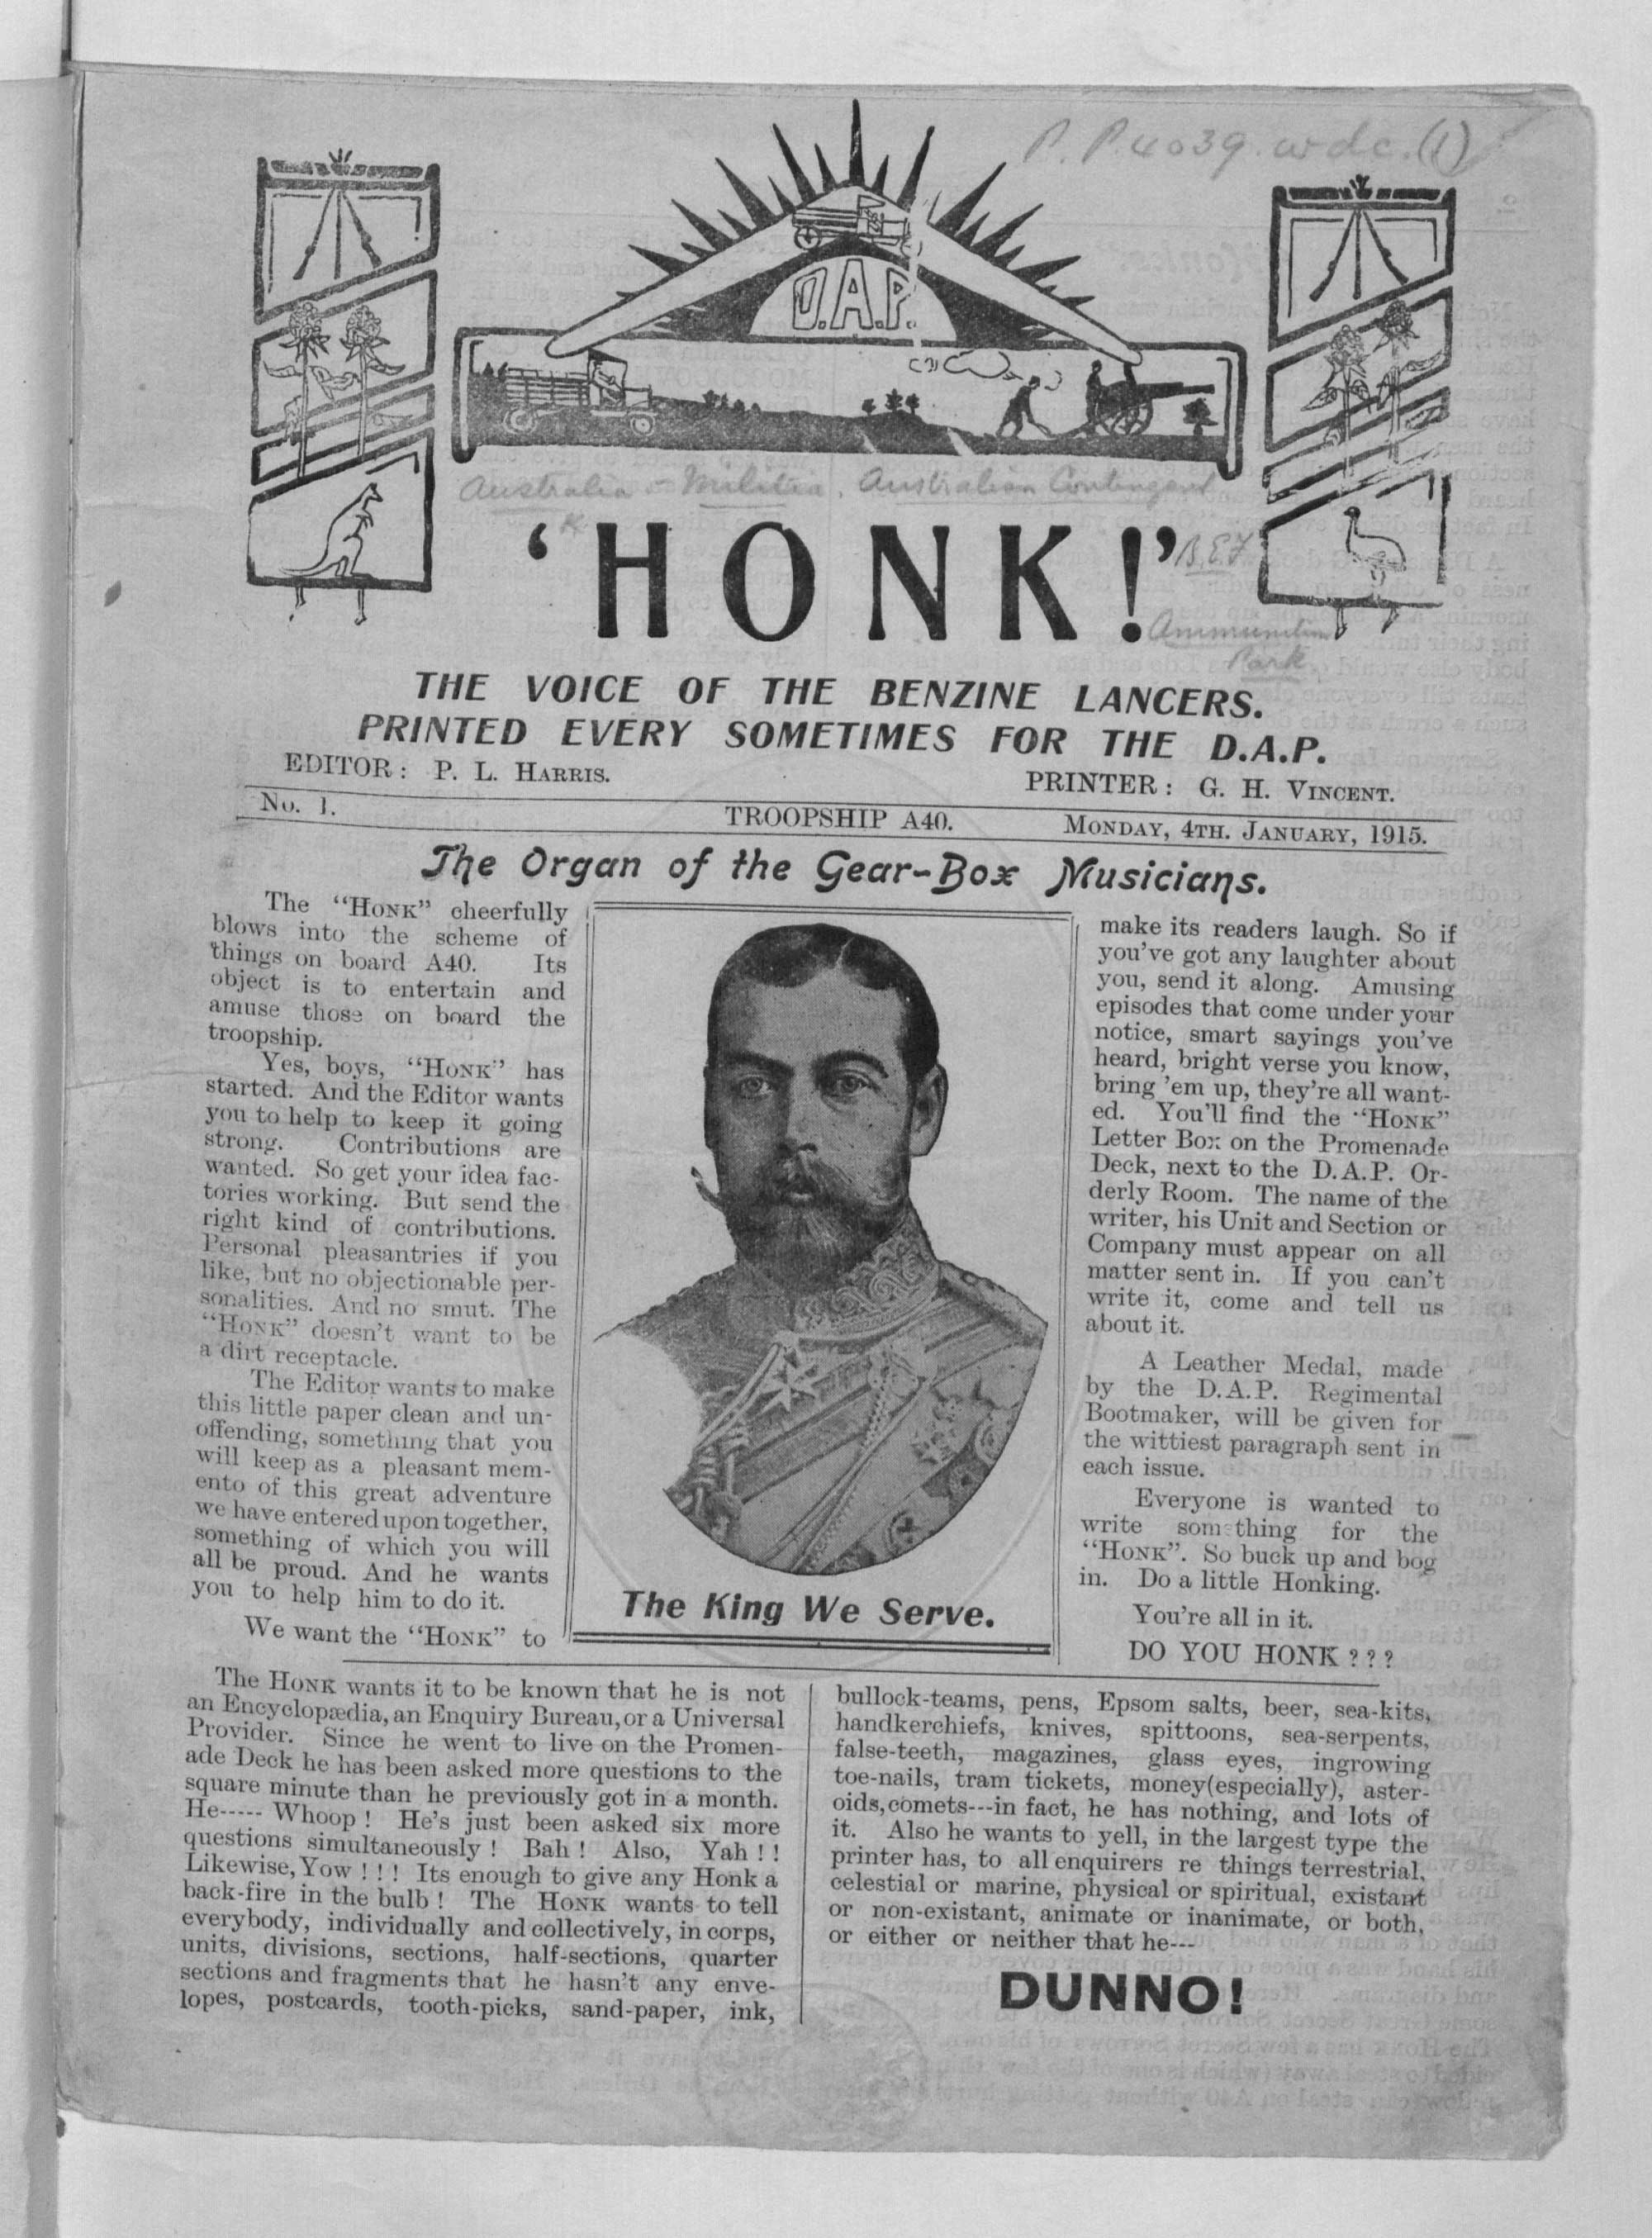 Trench journal 'Honk', first published in 1915, was typically filled with humour from the trenches and news from home.